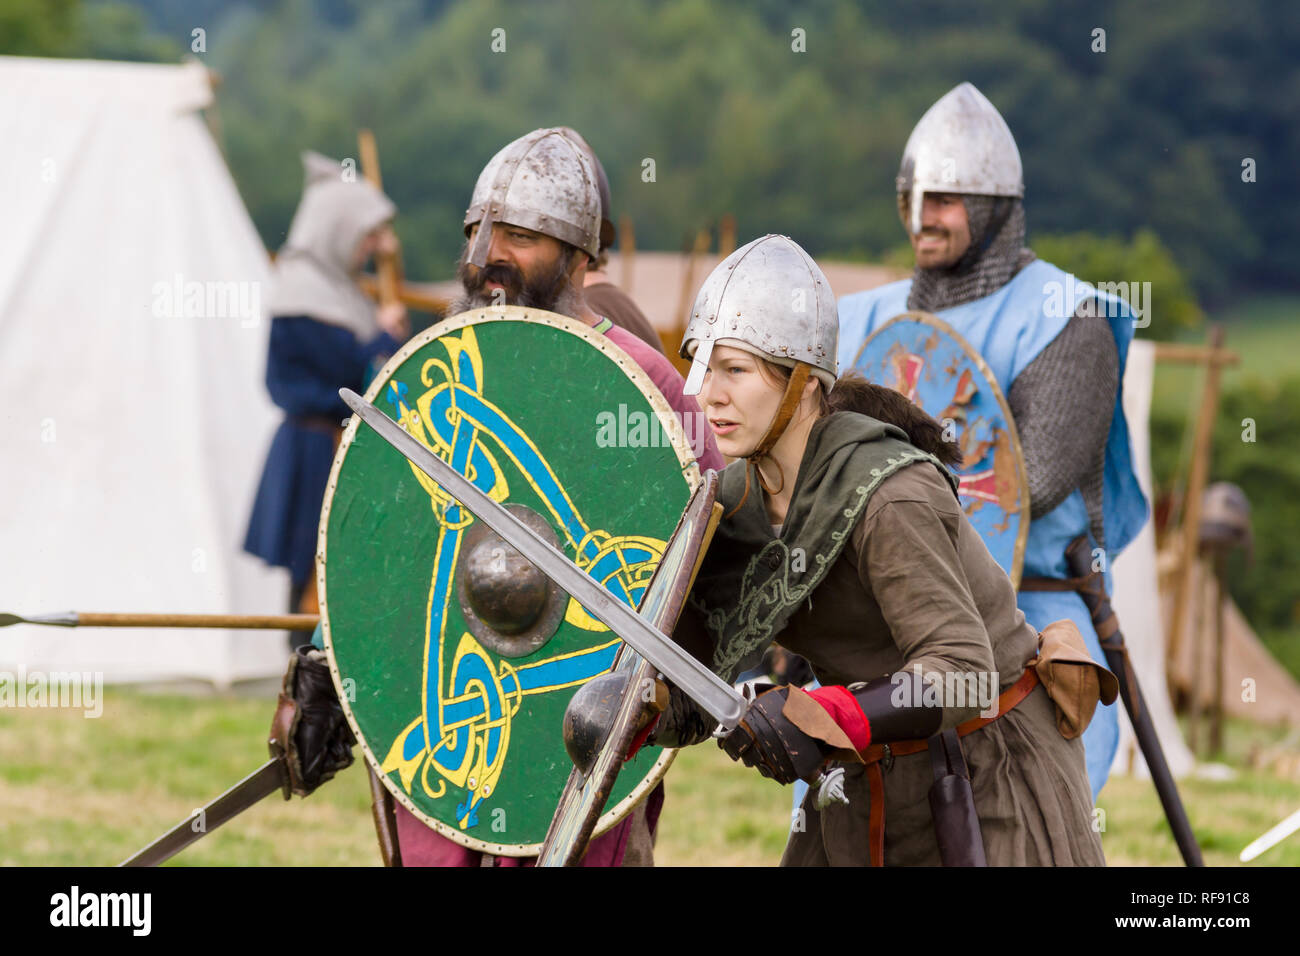 Medieval re-enactors dressed in armour and costumes of the 12th century equipped with swords and shields re-enacting combat of the period Stock Photo